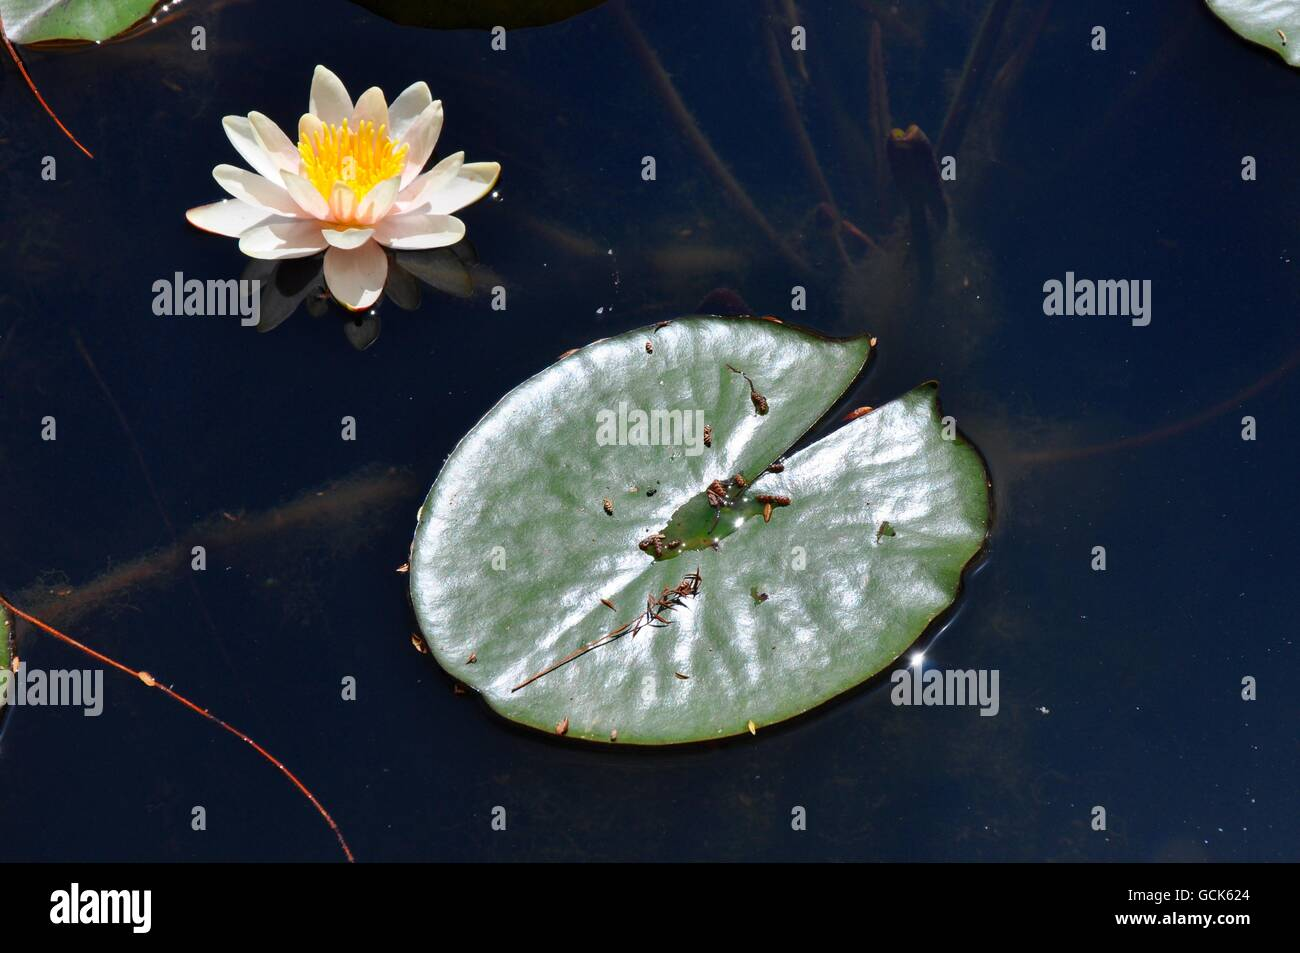 Yellow Lily Pad Green Stock Photos & Yellow Lily Pad Green Stock ...